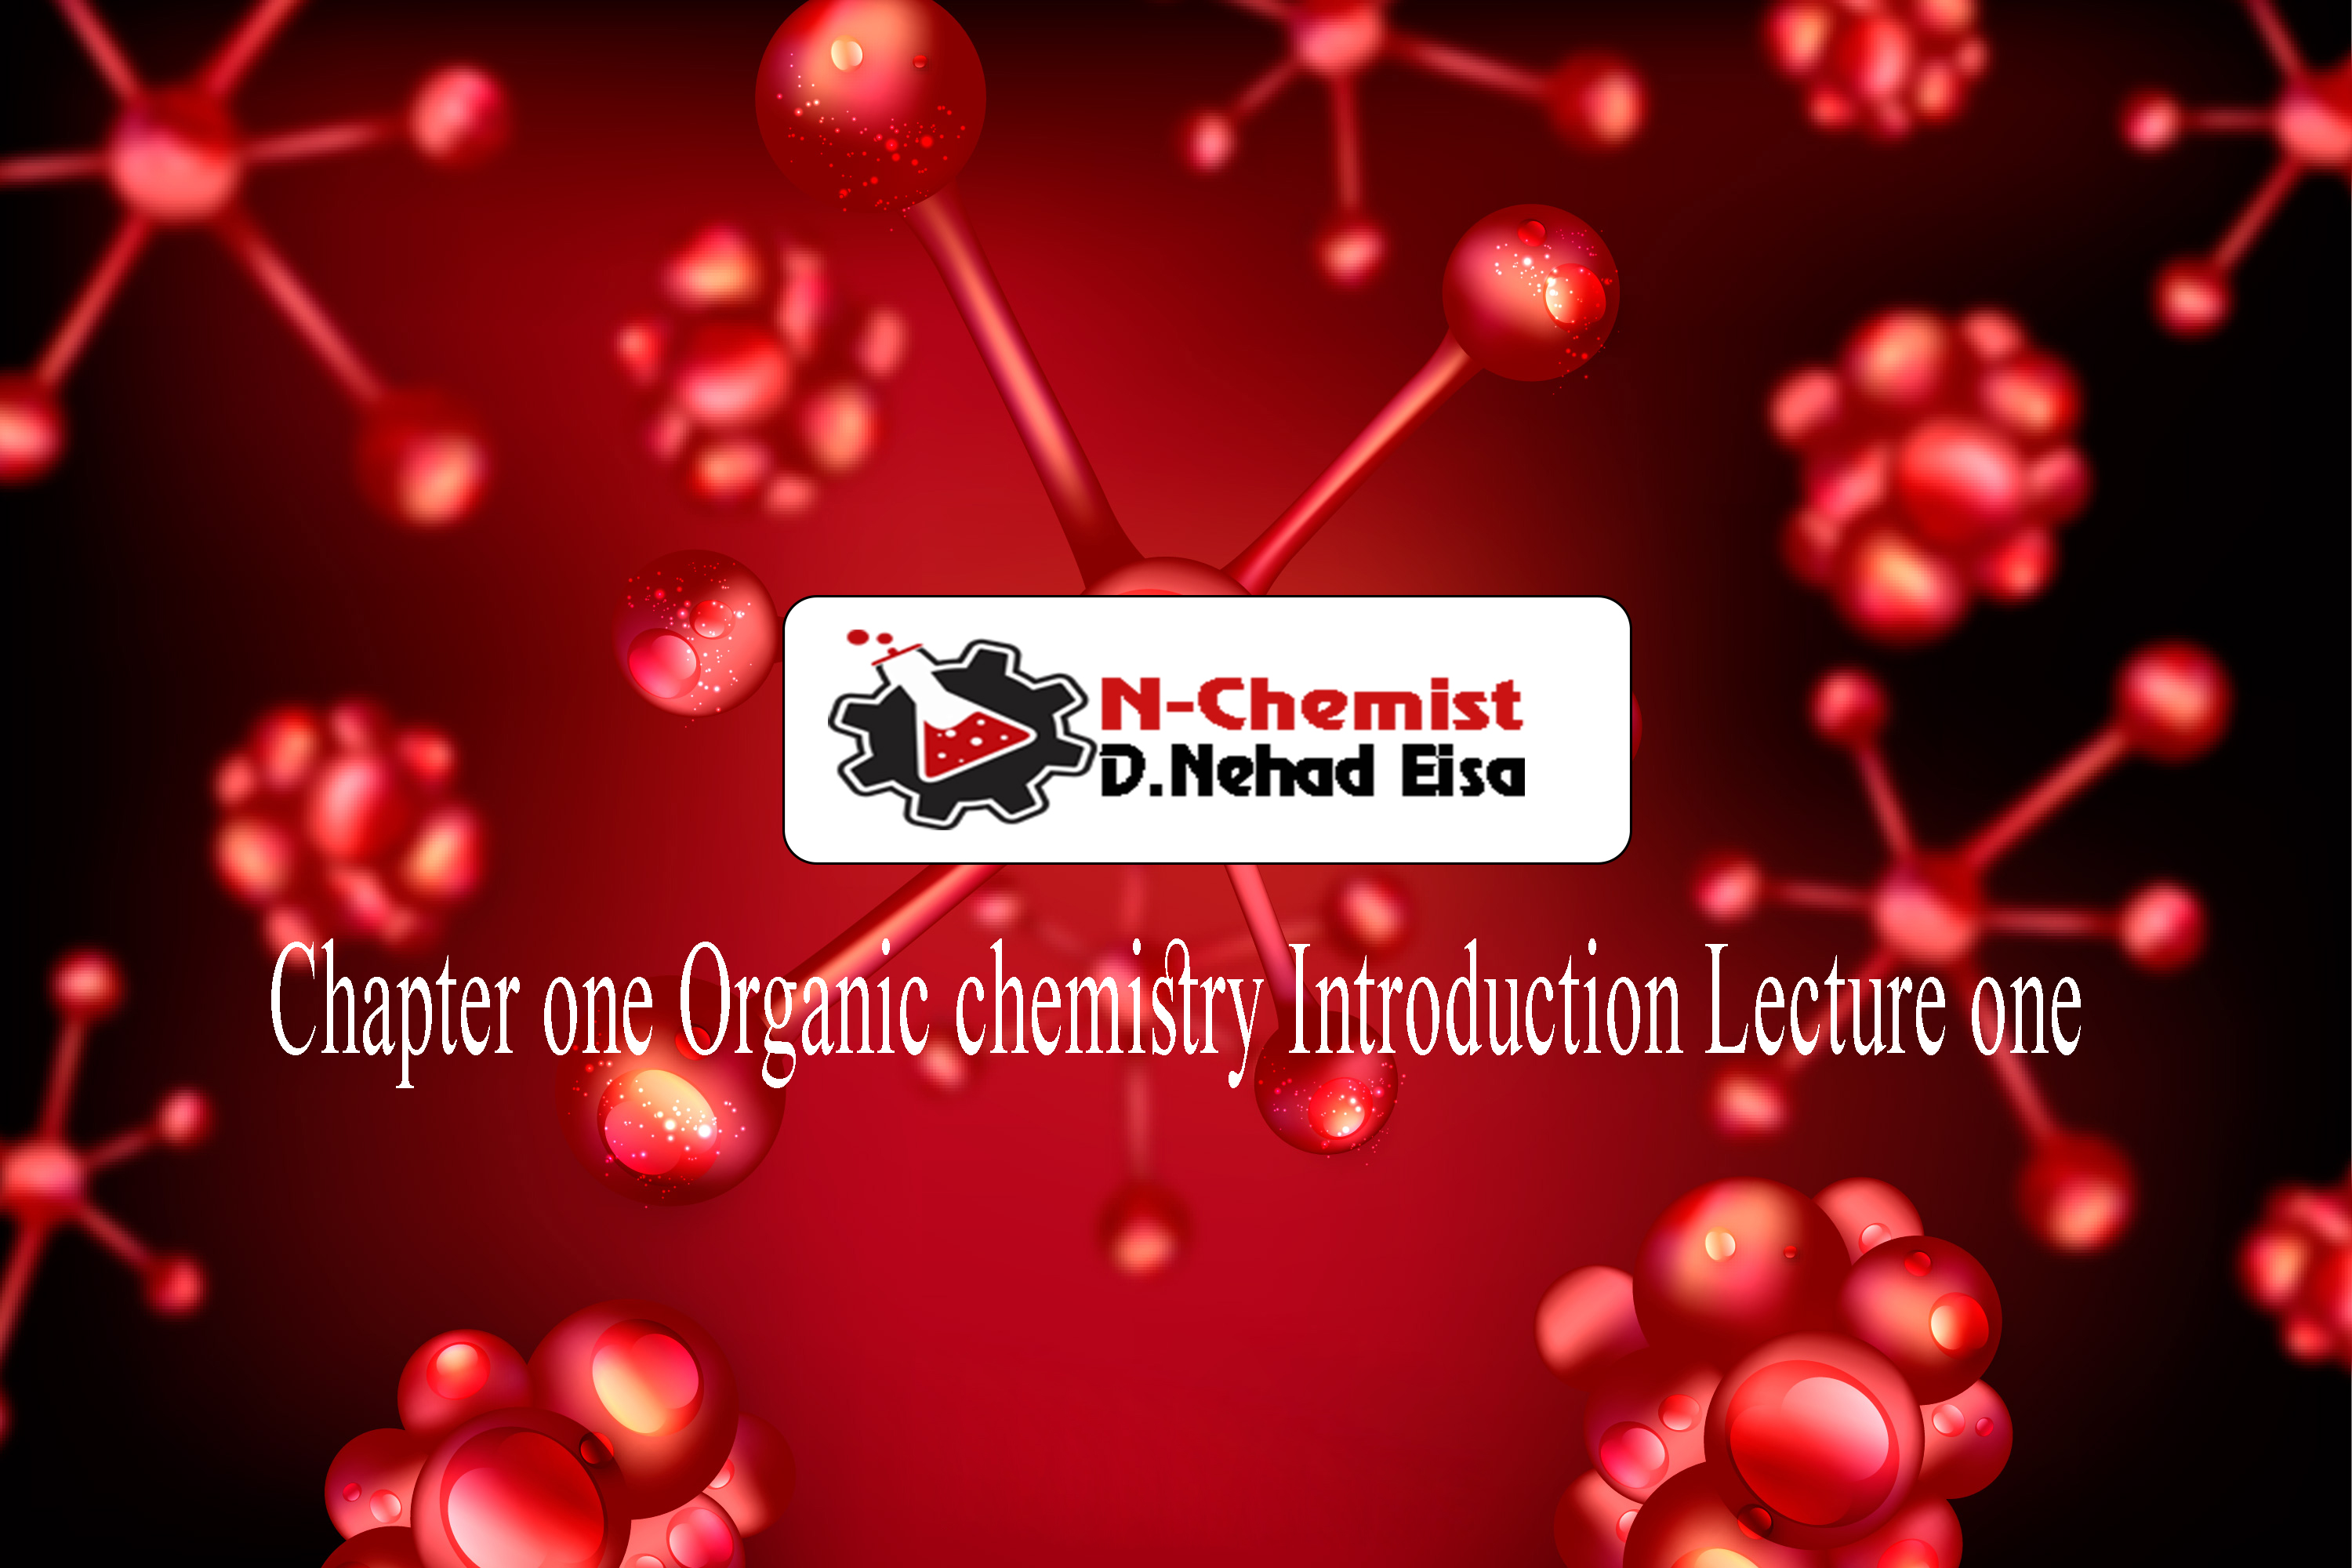 Chapter one Organic chemistry Introduction Lecture one